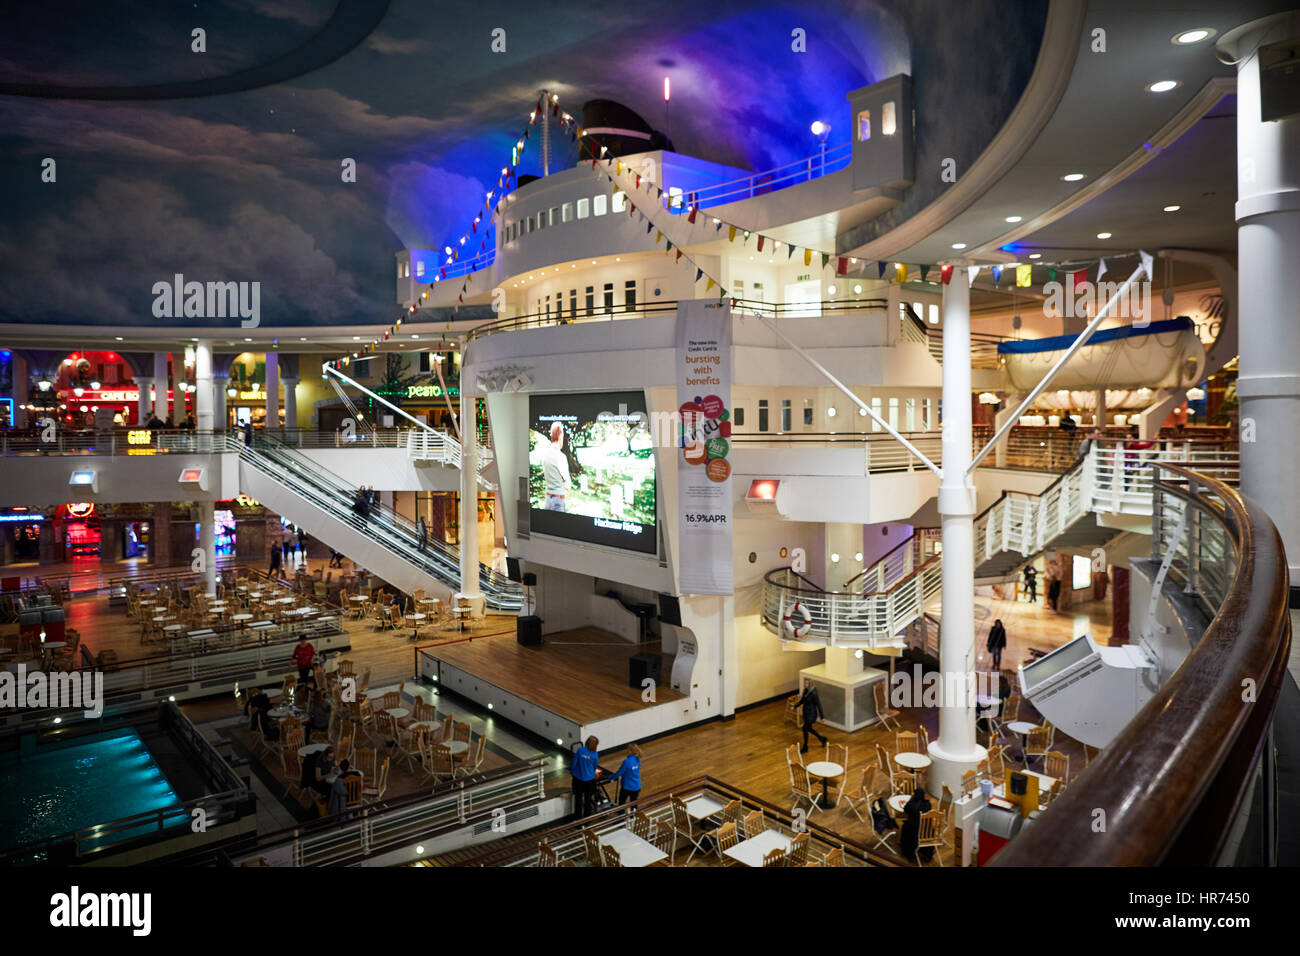 Food hall  inside interior of Great Hall Orient,  Intu Trafford Centre t at shopping mall centre complex Dunplington, - Stock Image